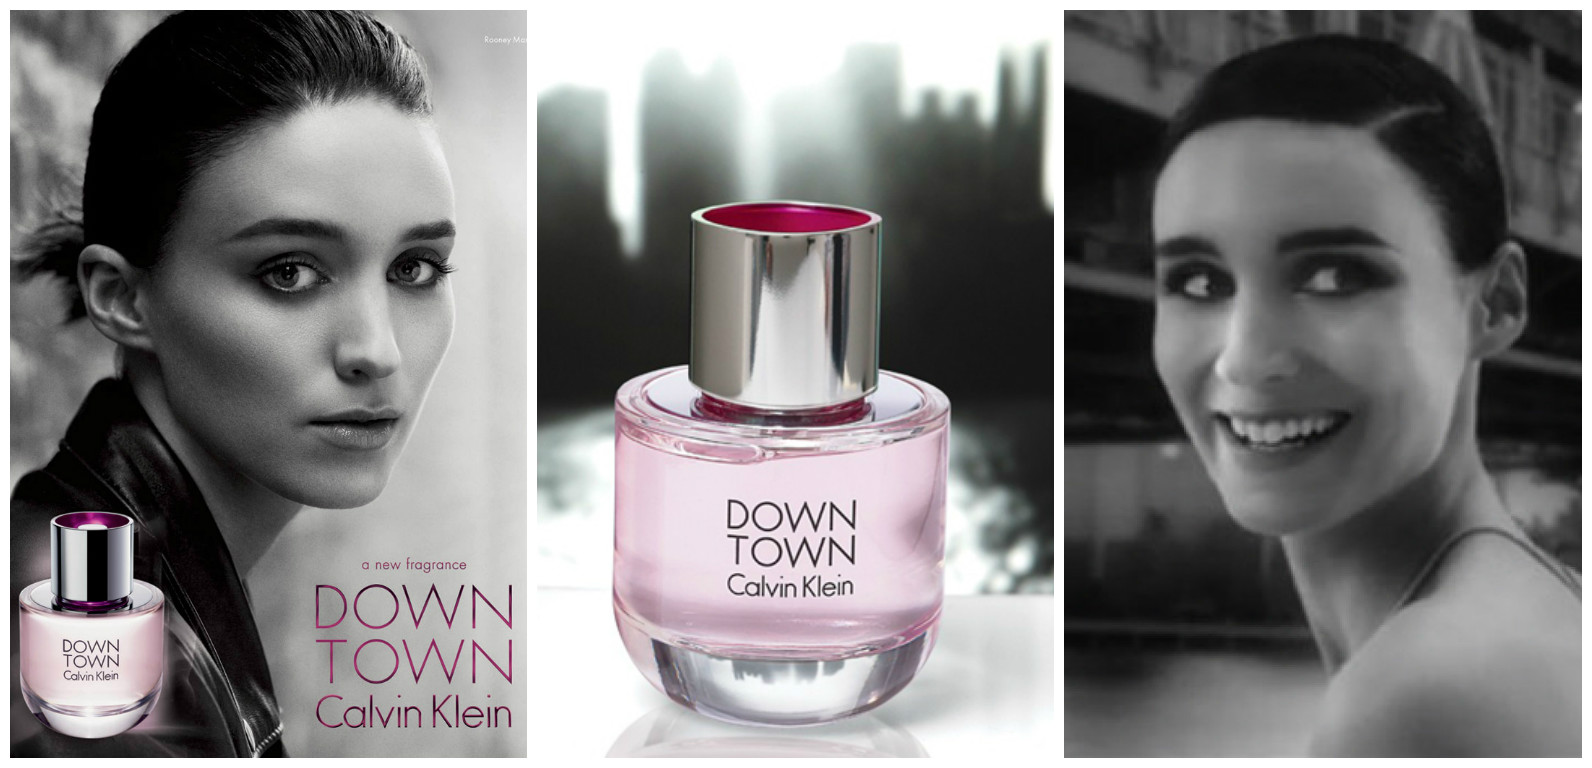 Perfume of the Day: Downtown by Calvin Klein